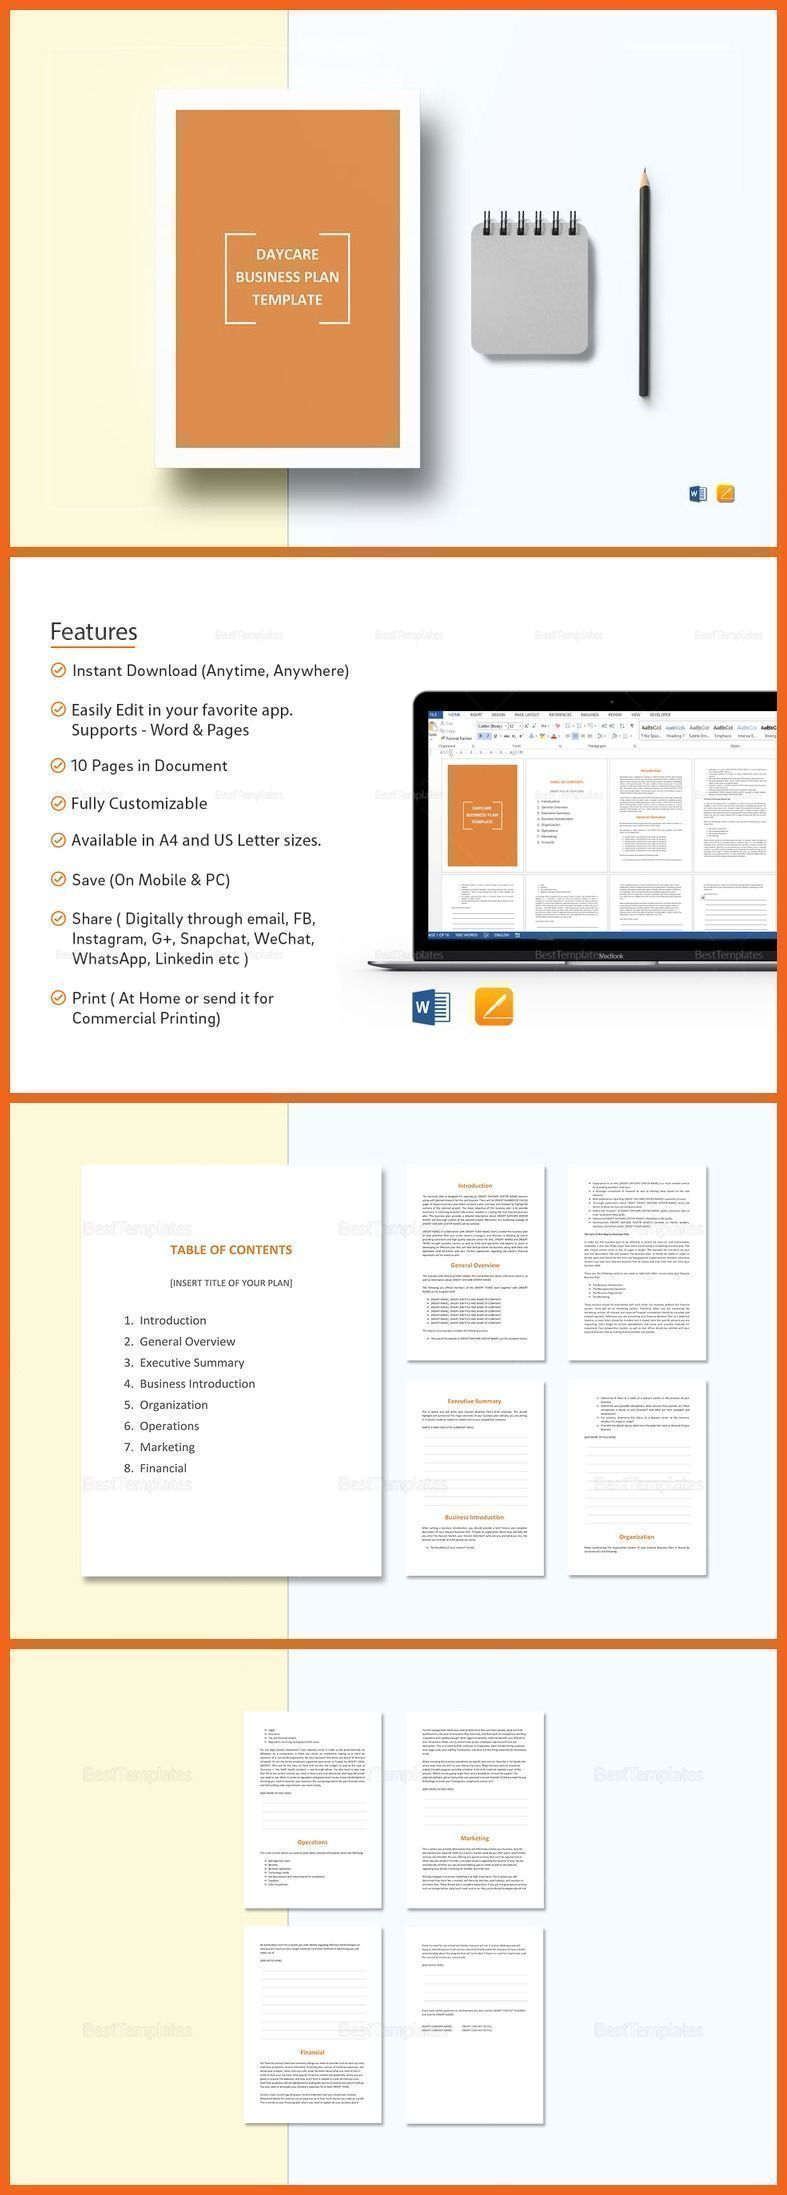 Daycare Business Plan Template 12 Formats Included MS